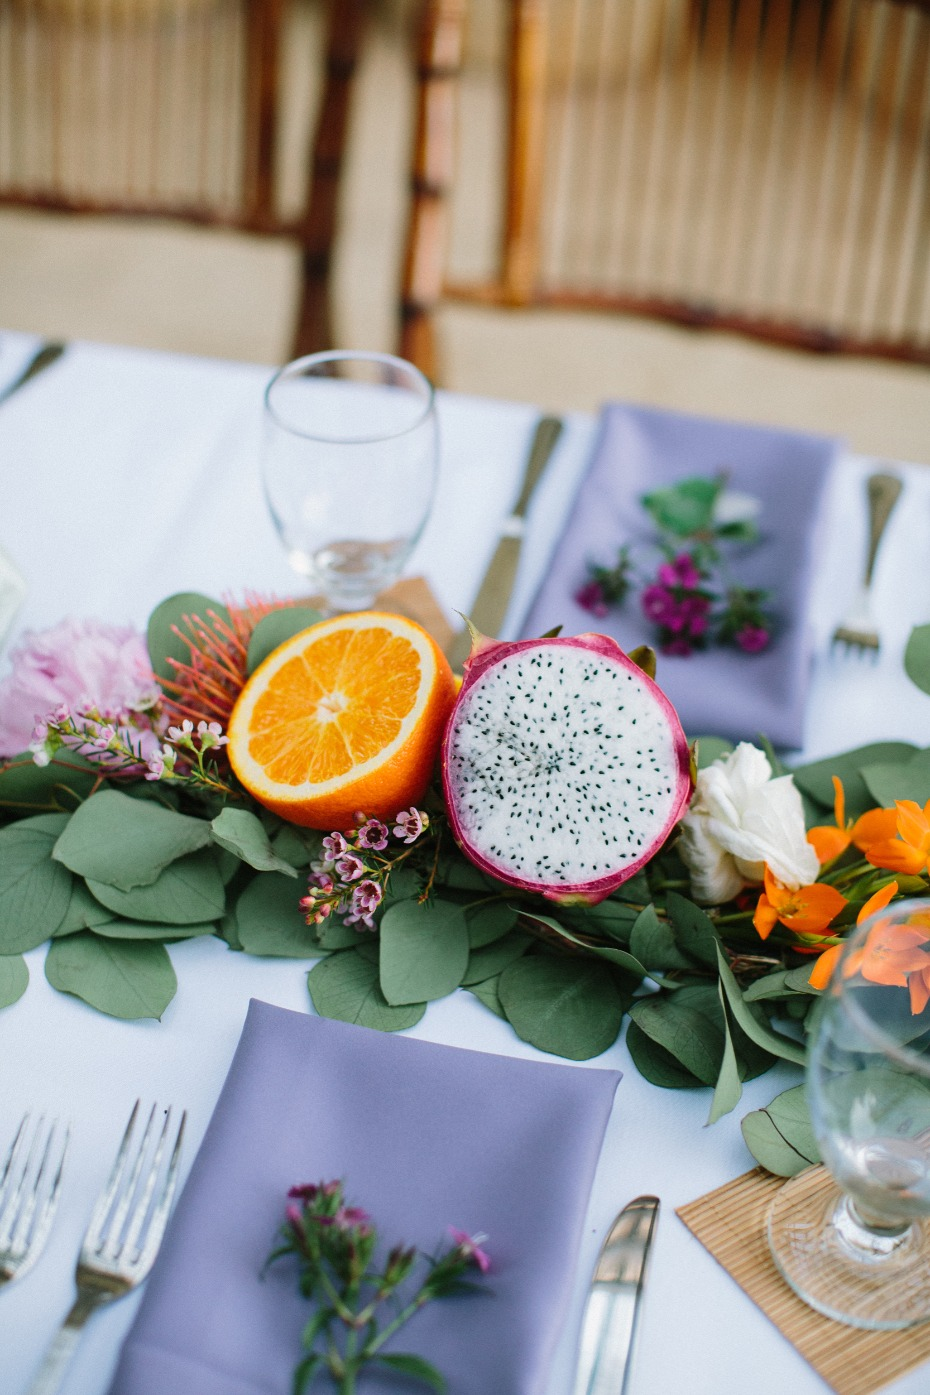 Tropical fruit centerpiece idea